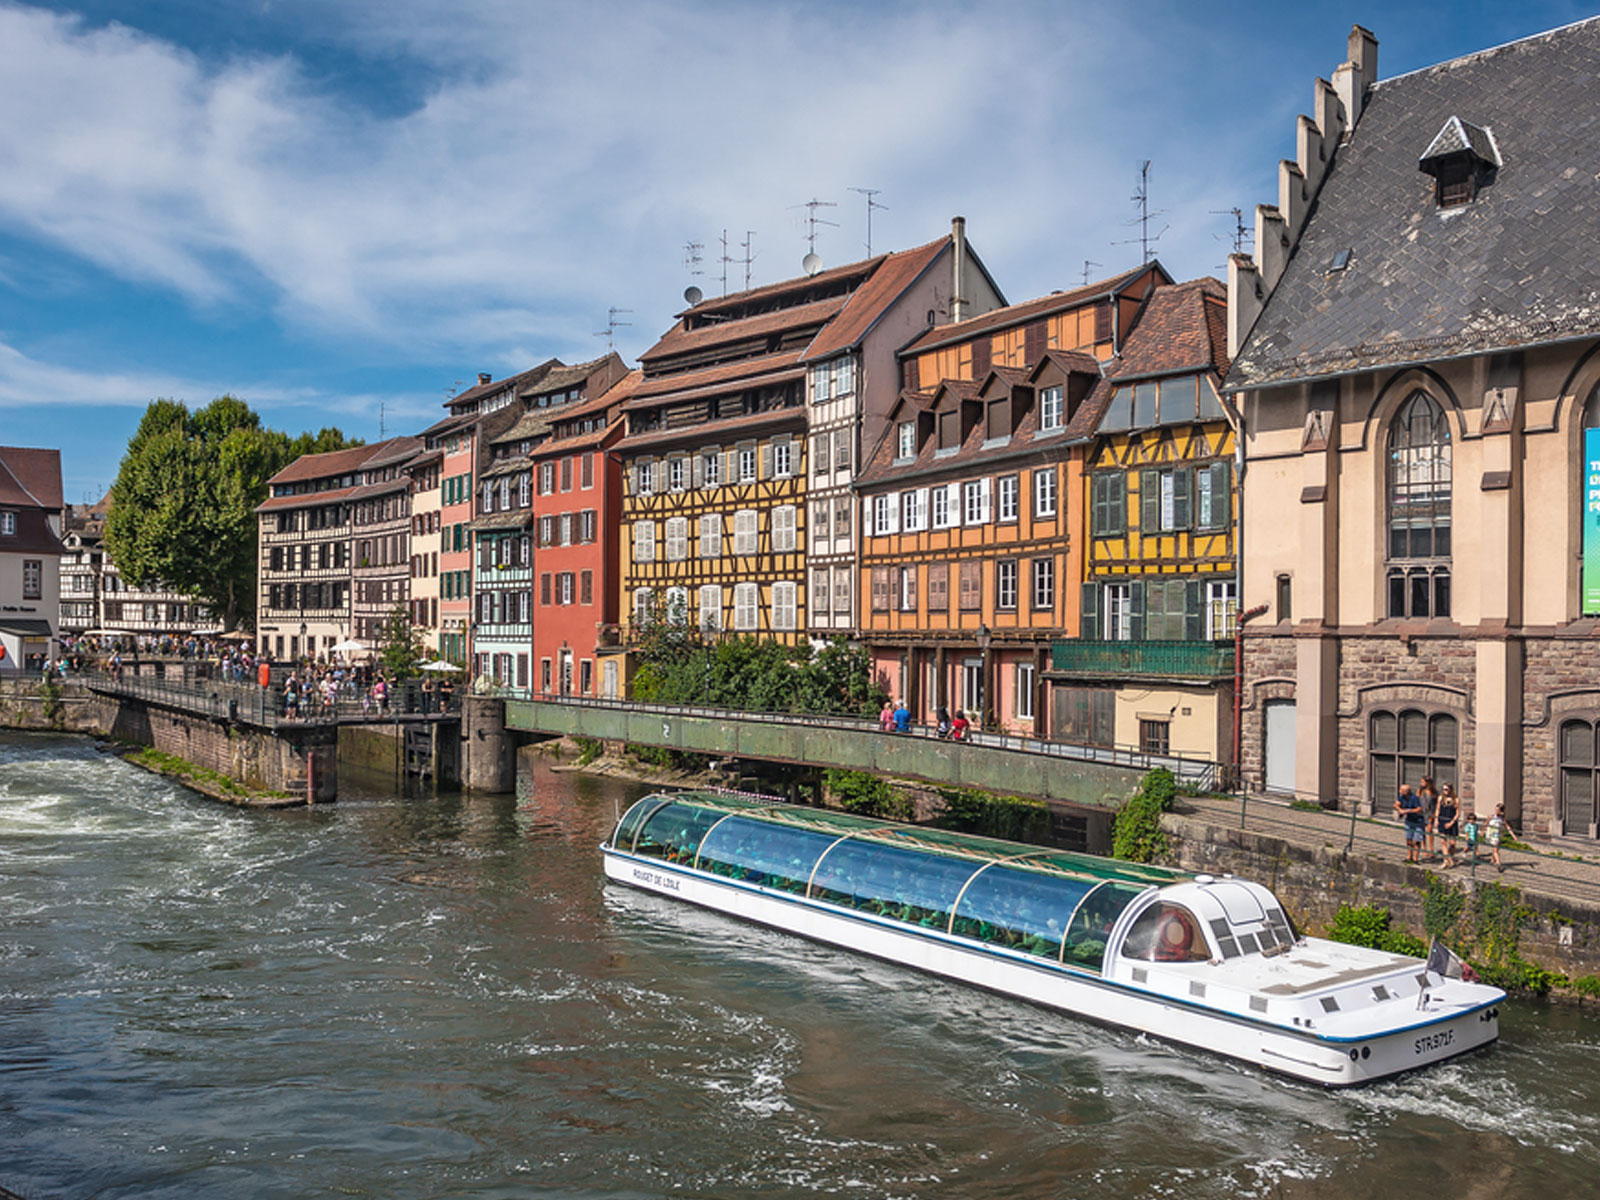 City of Strasbourg